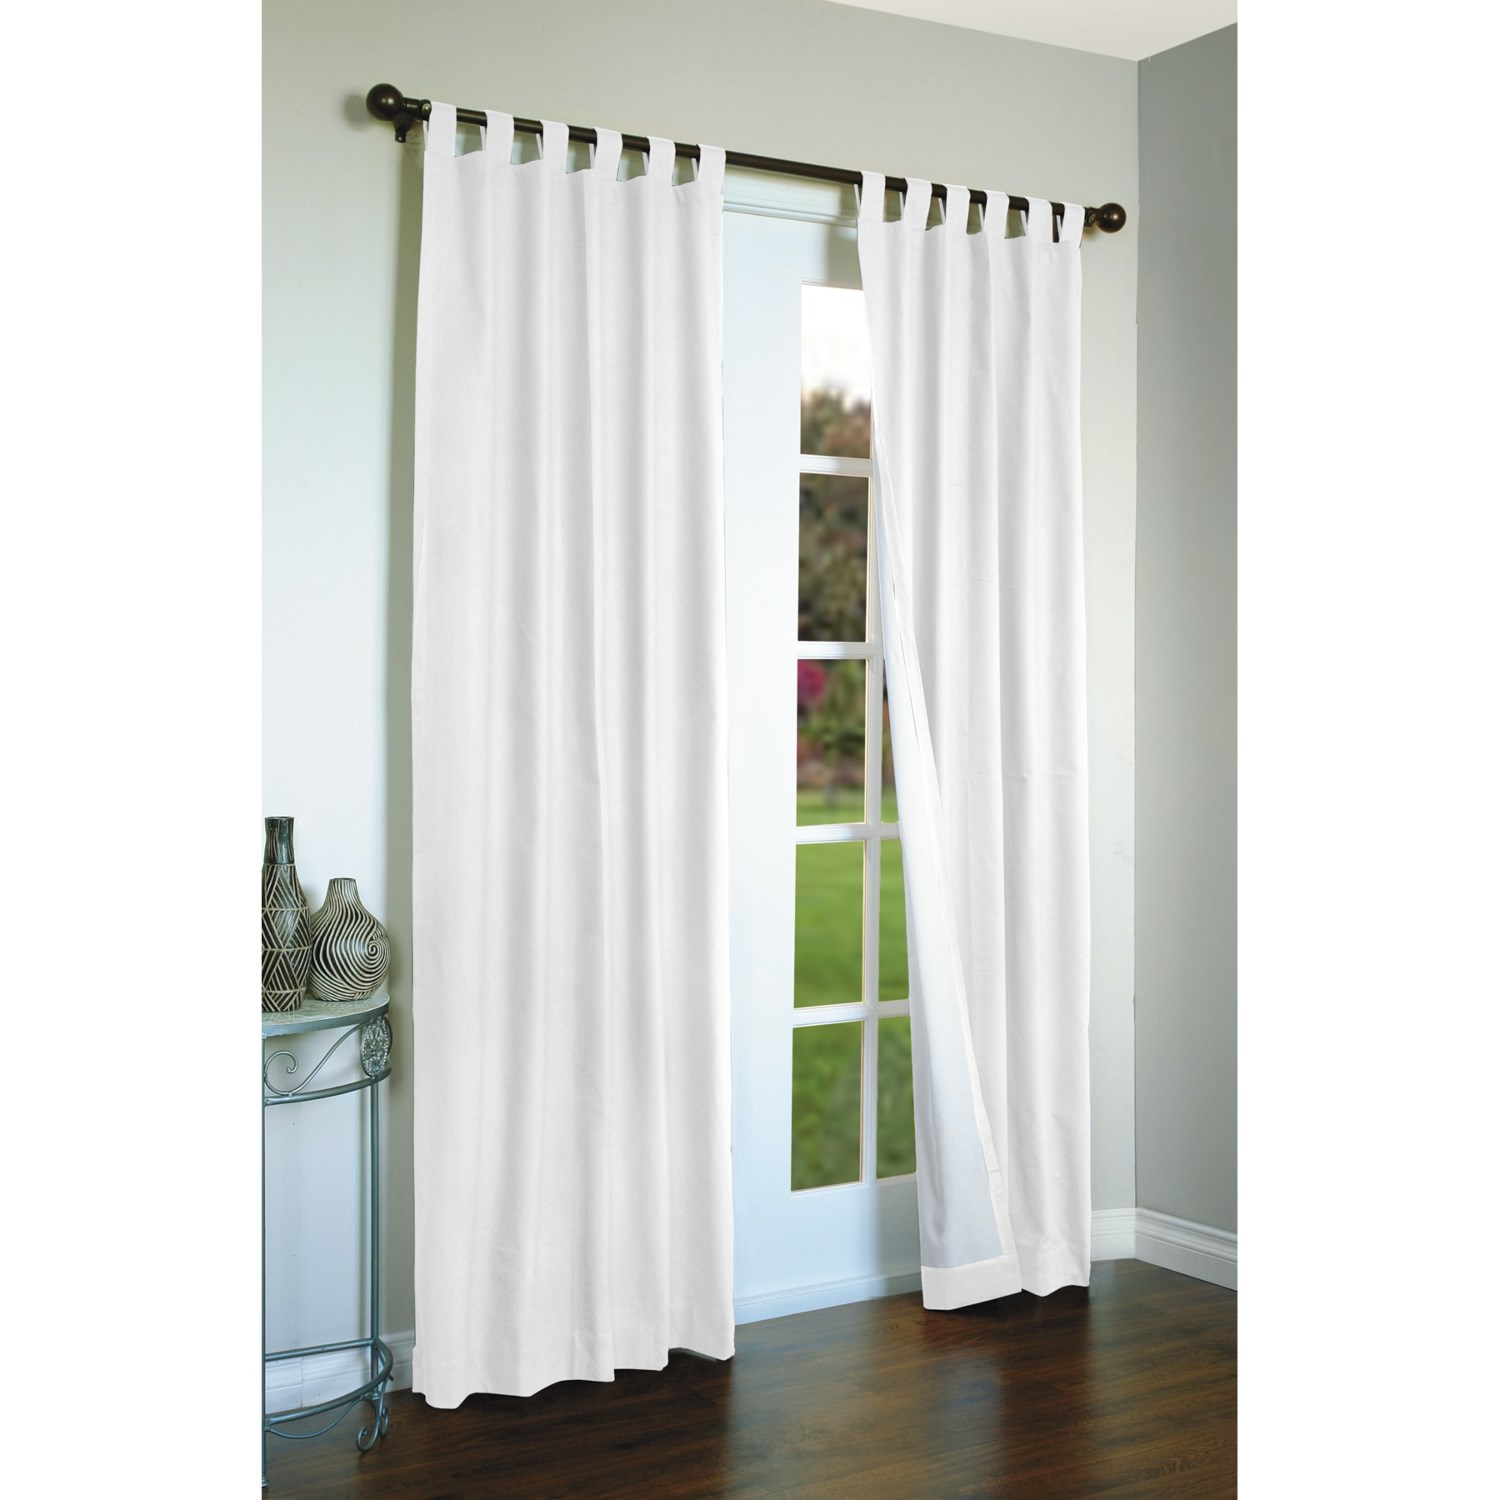 Thermalogic Weathermate Curtains 80x54 Tab Top Insulated Save 36